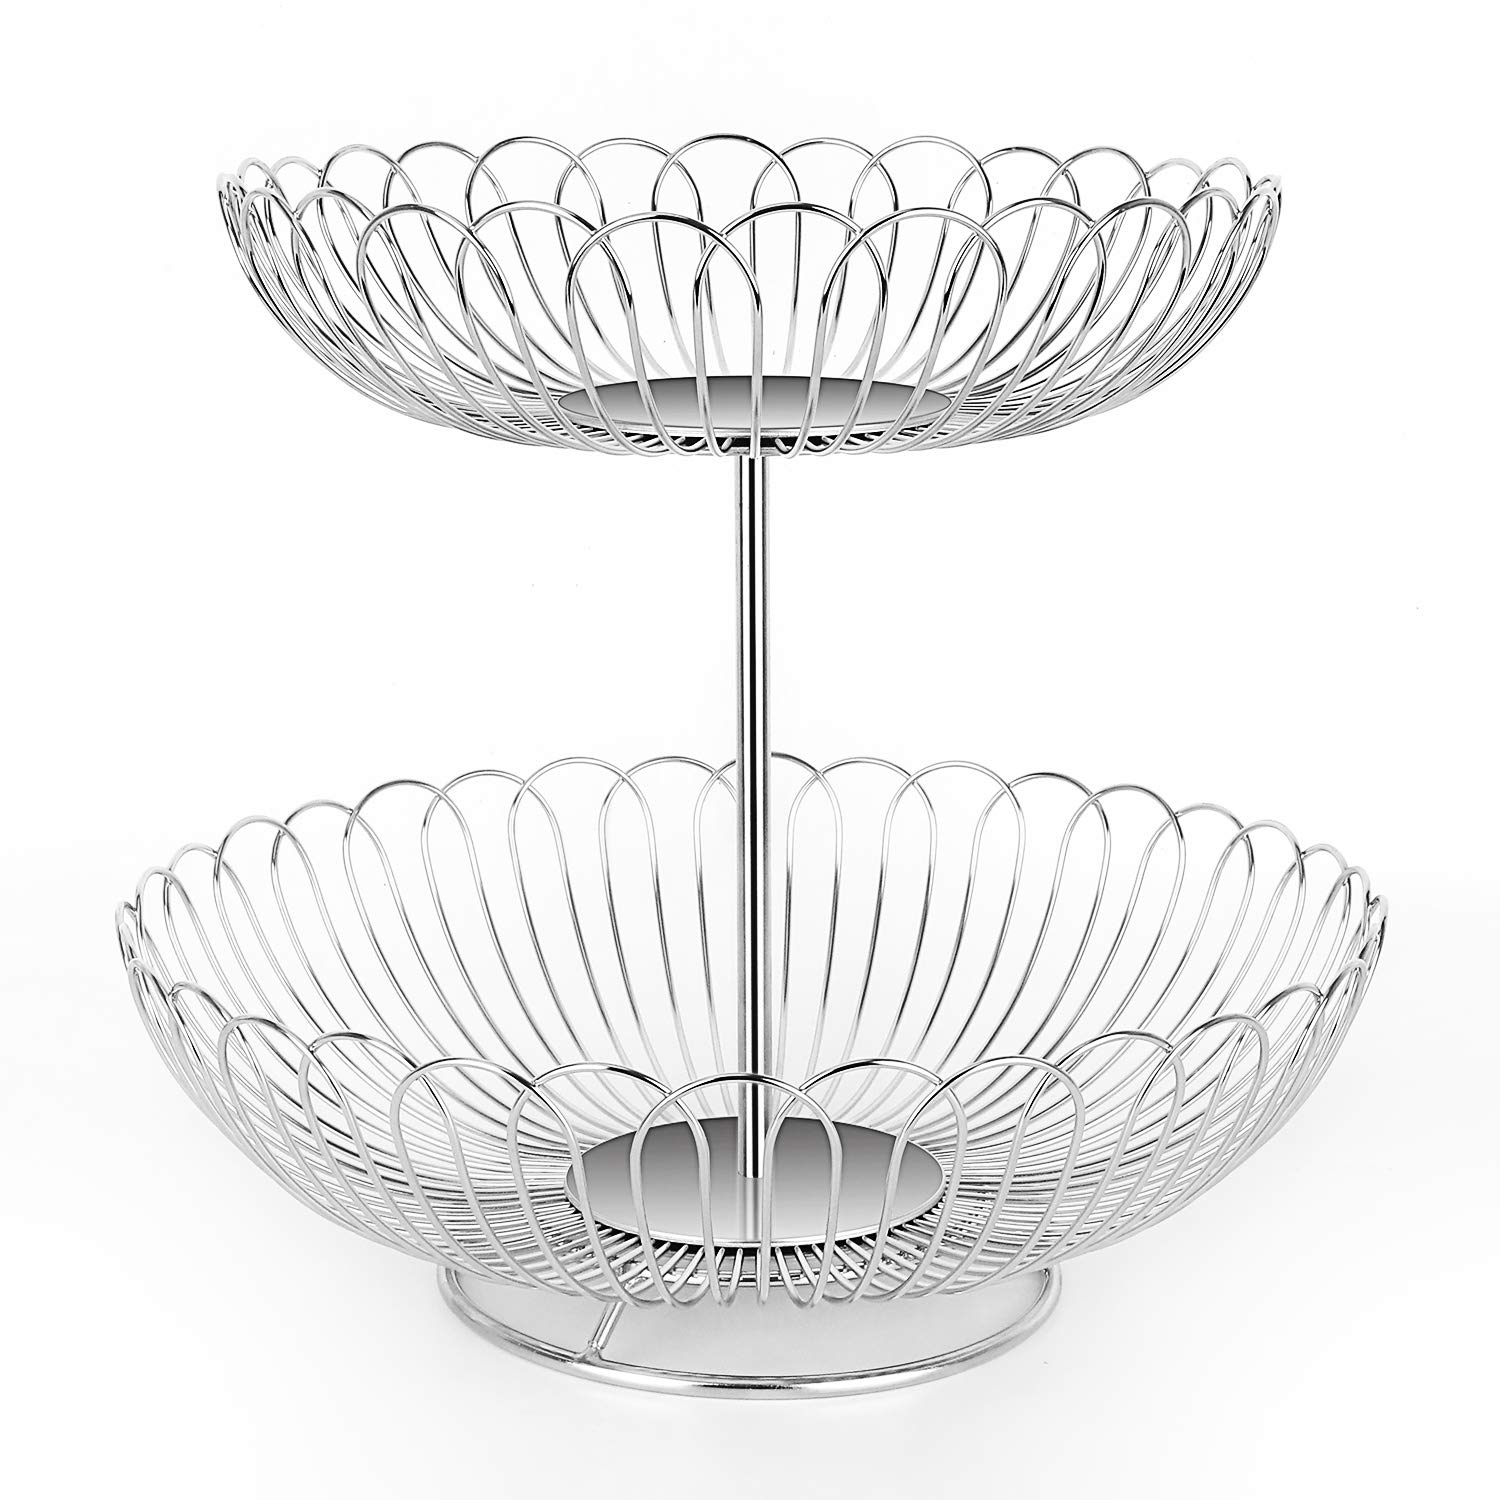 Stainless Steel 2 Tier Wire Fruit Basket Bowl for Kitchen Counter Stand with Bread